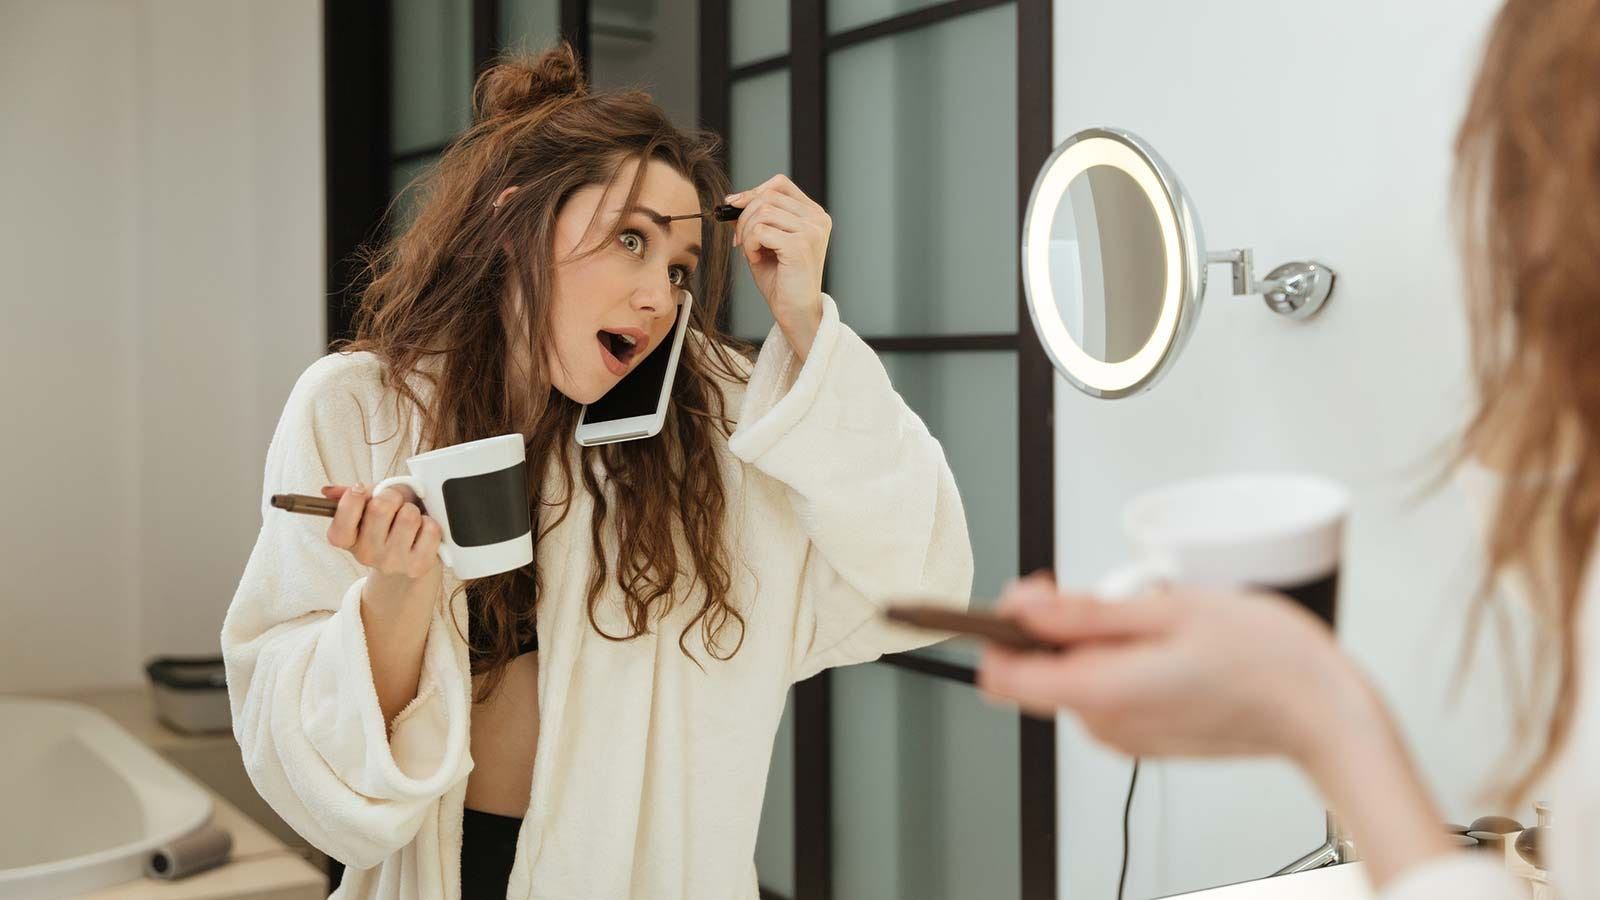 woman getting ready in the morning, putting on her makeup in the bathroom